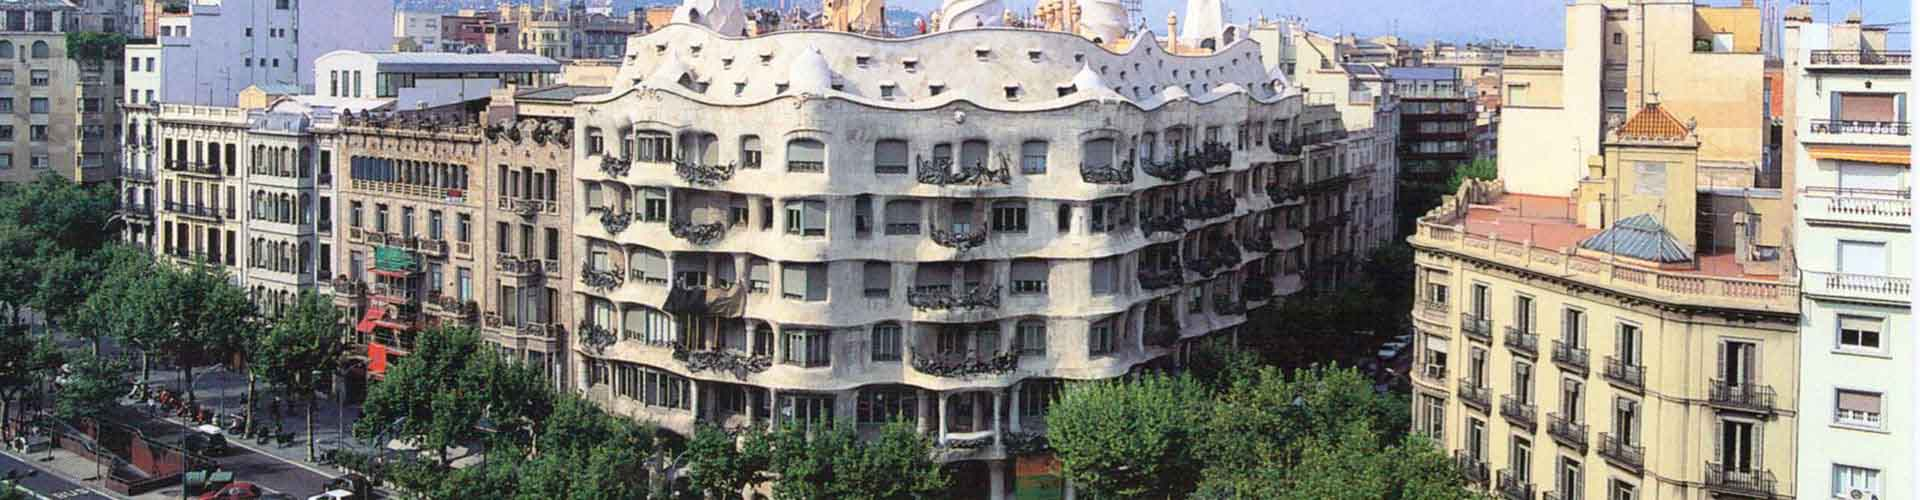 Barcelona – Hostels close to Casa Milà. Maps for Barcelona, Photos and Reviews for each hostel in Barcelona.